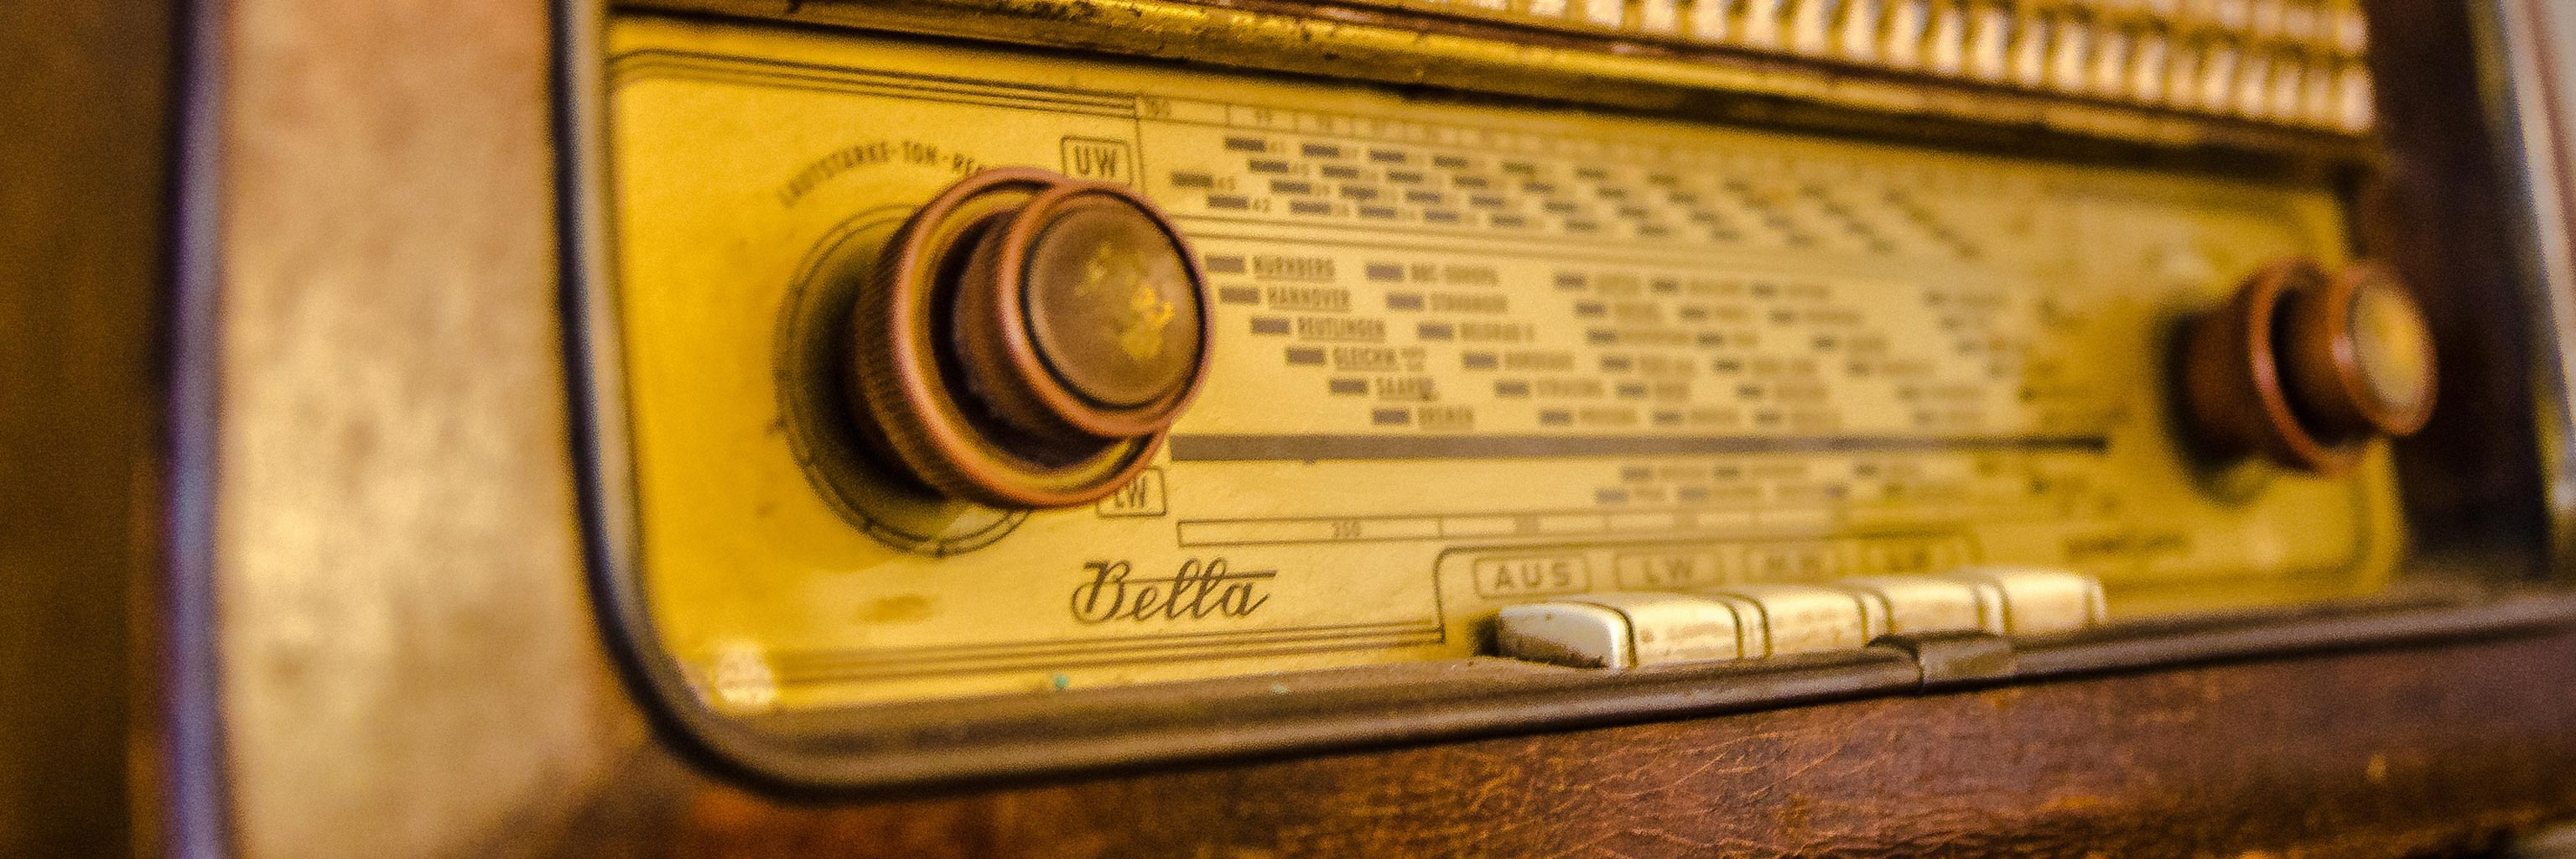 Close-up of an old radio